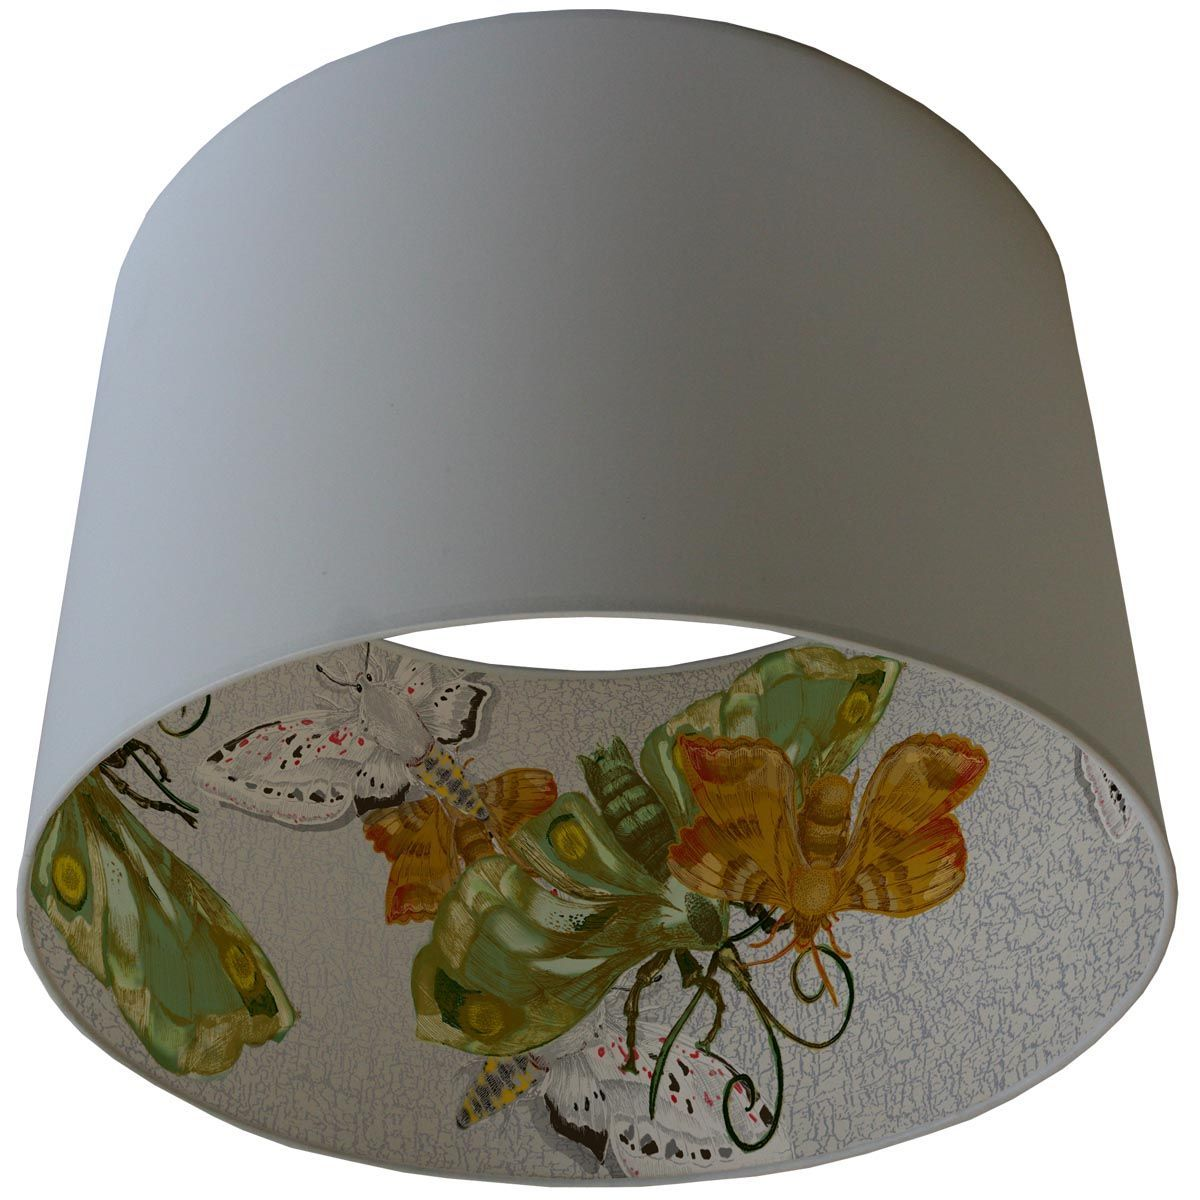 Timorous Beasties Lampshade By Timorousbeasties Com Via Sue St Amant Wallpaper Lined Lampshade Surprise Det Timorous Beasties Lampshades Diy Lamp Shade